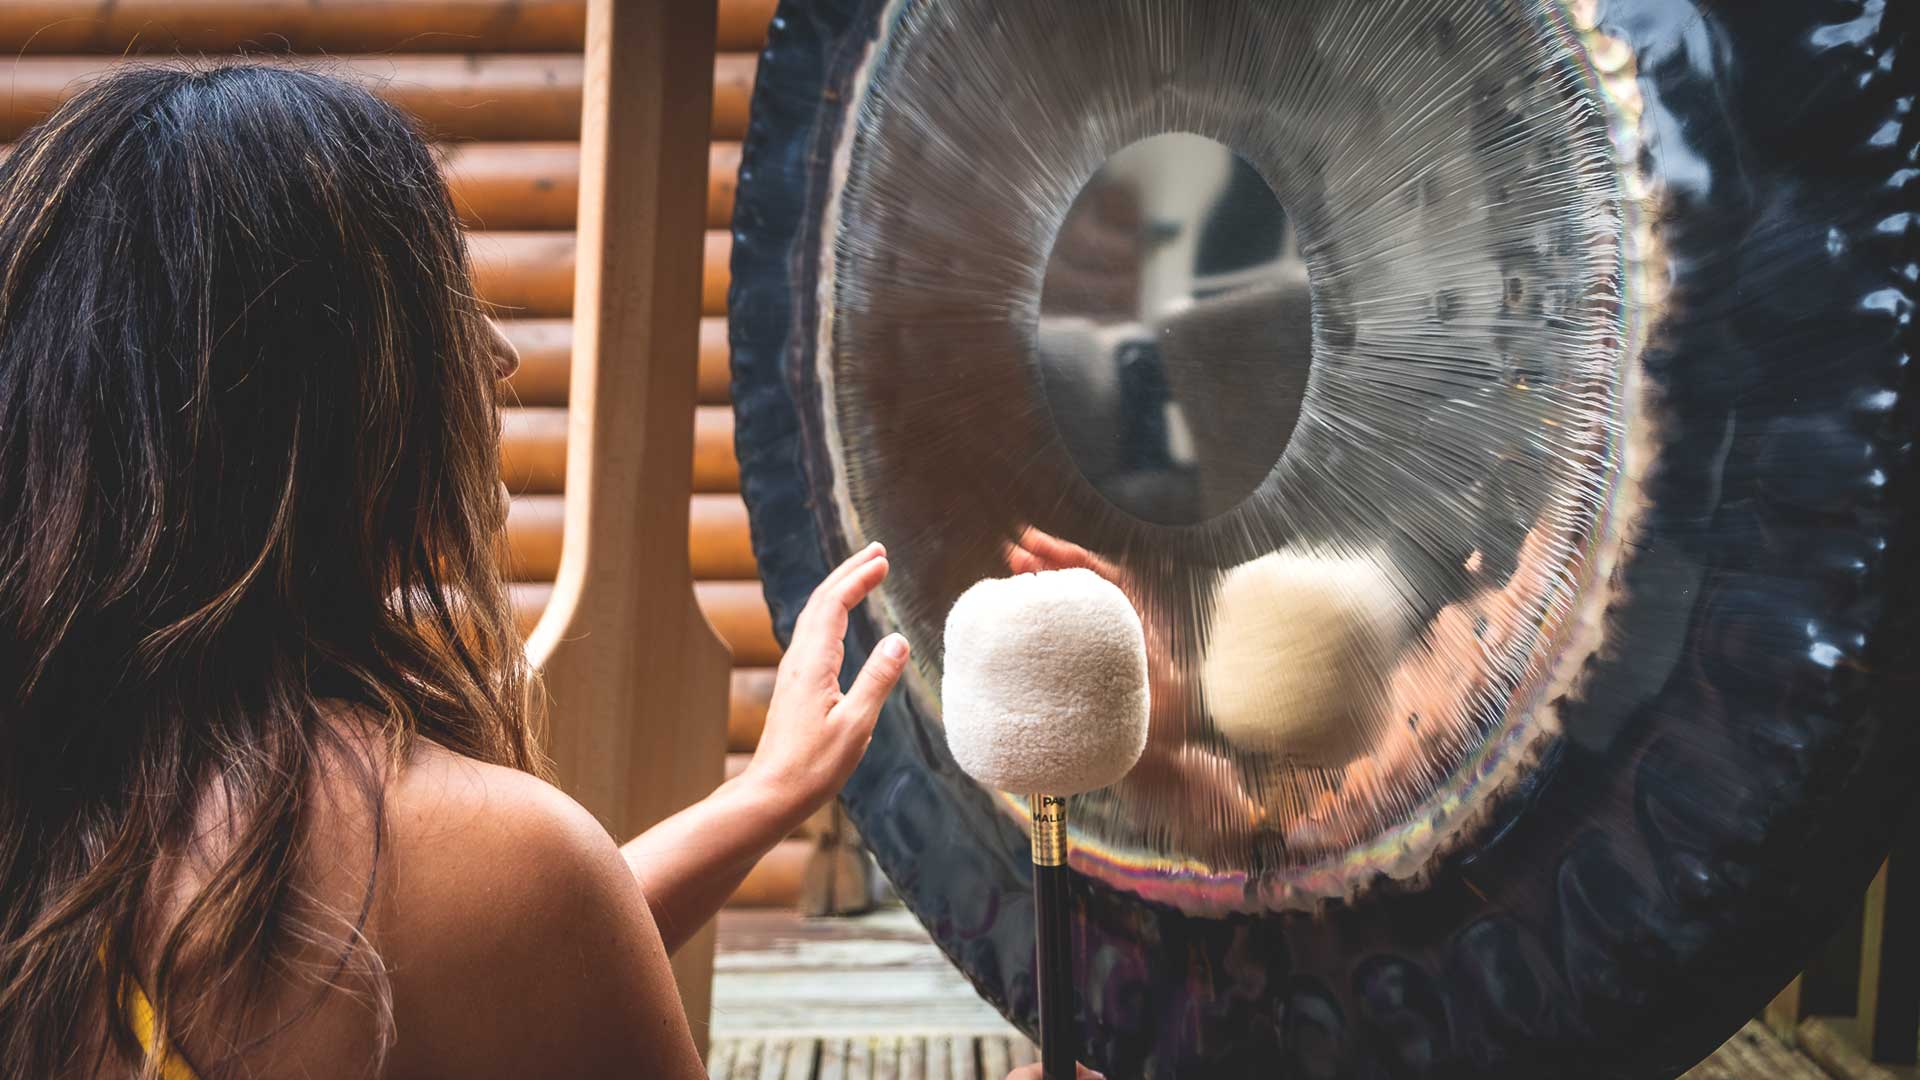 gong-meditation-feature-image